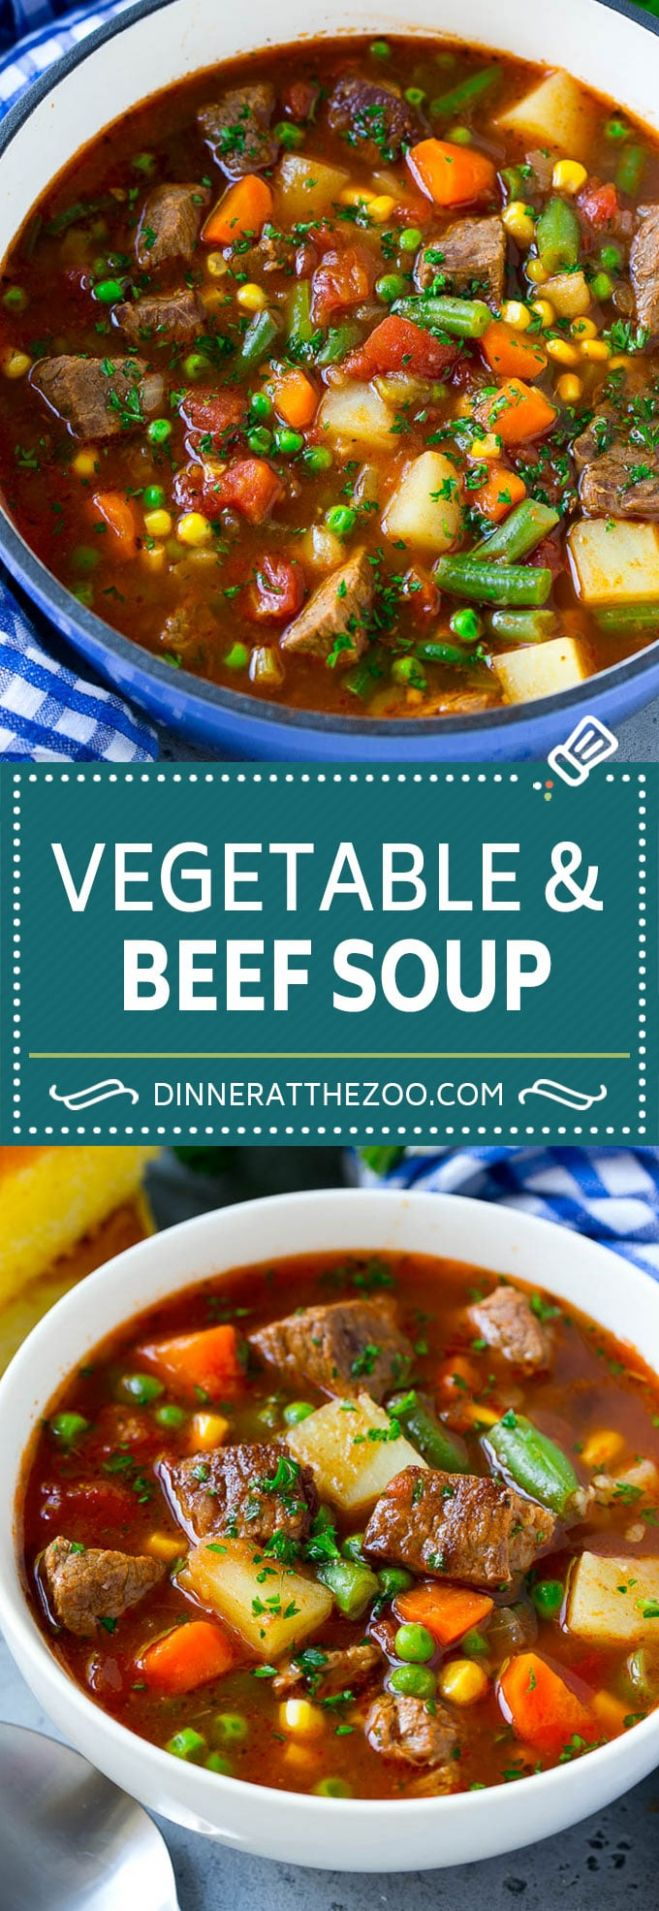 Vegetable Beef Soup - Dinner at the Zoo - Recipes Beef Vegetable Soup